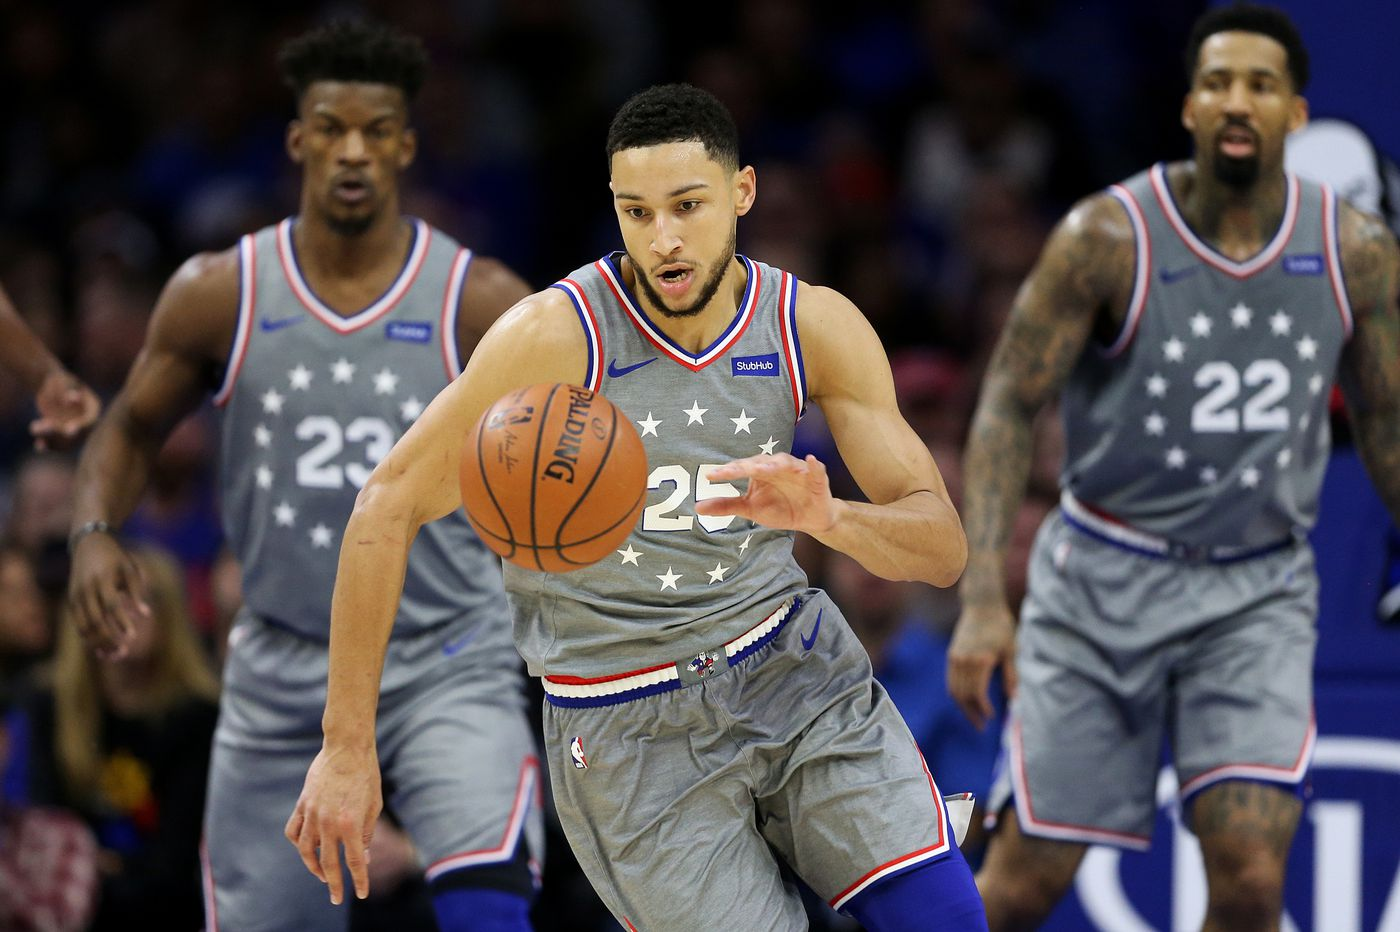 Sixers lose to league-worst Cleveland Cavaliers, snap home winning streak